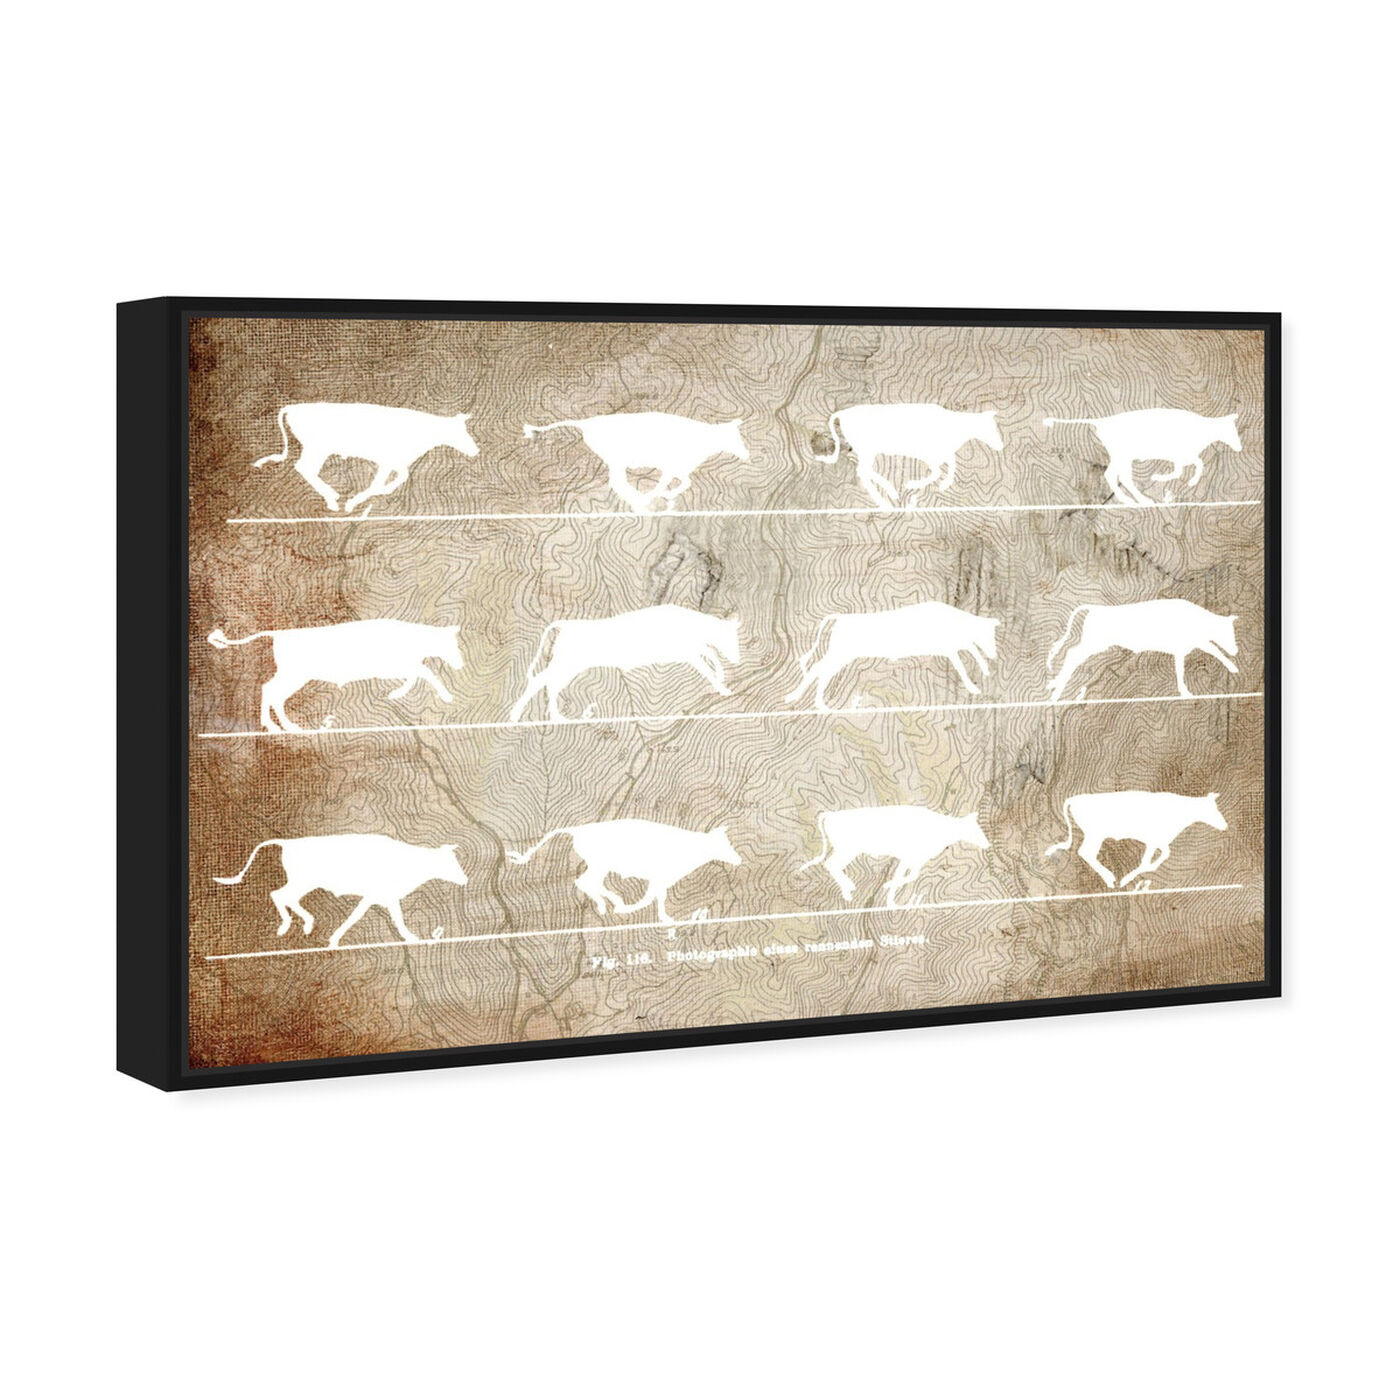 Angled view of Cows in Motion featuring animals and farm animals art.